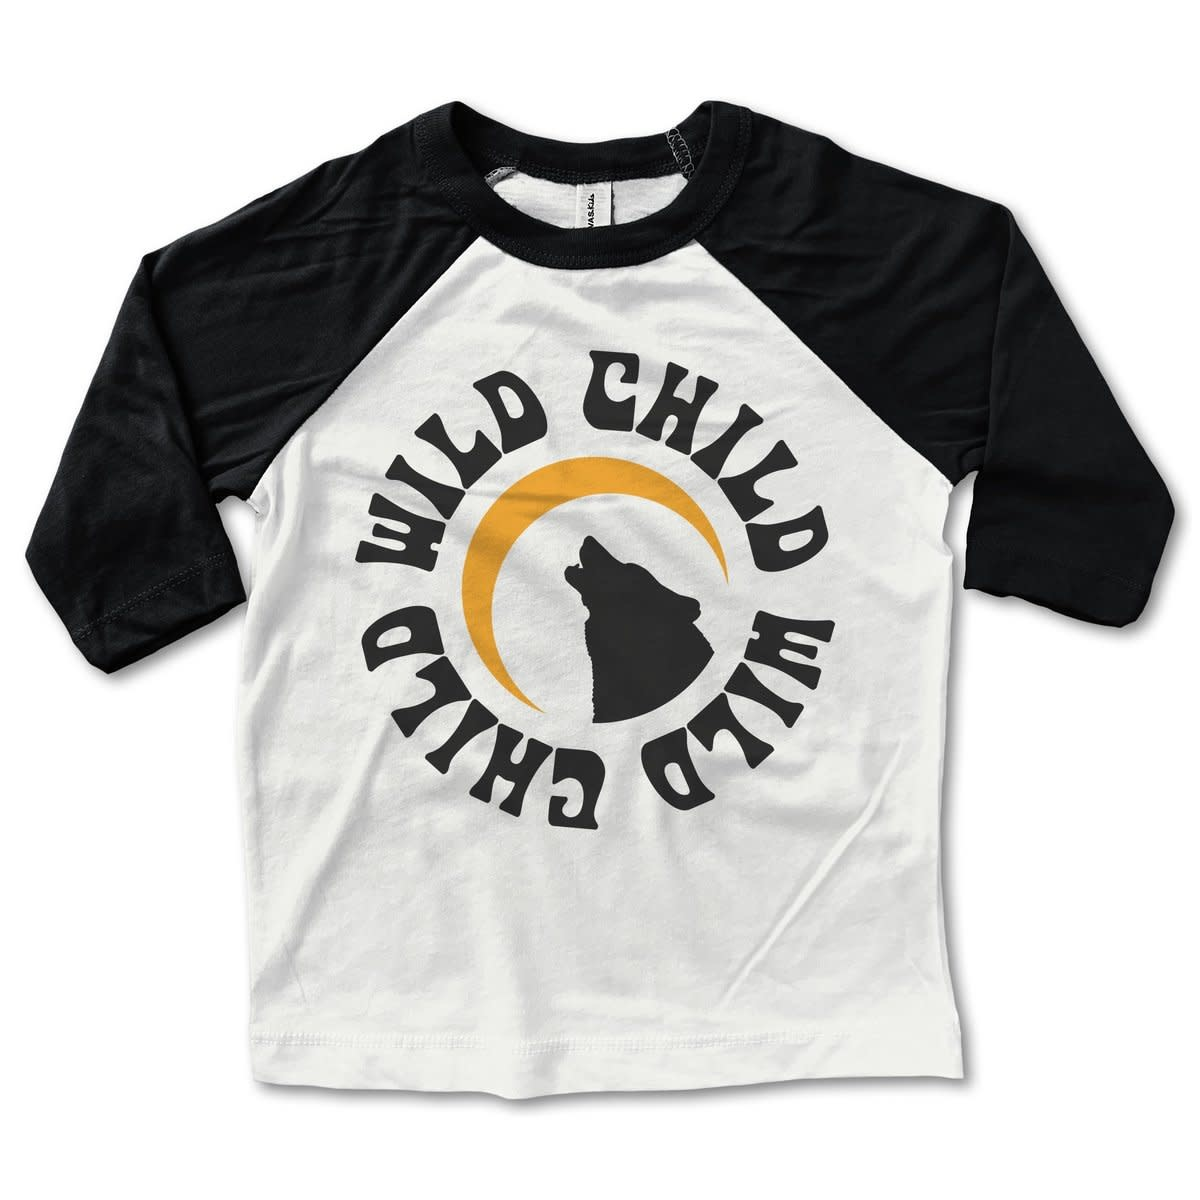 Rivet Apparel Wild Child Baseball Tee